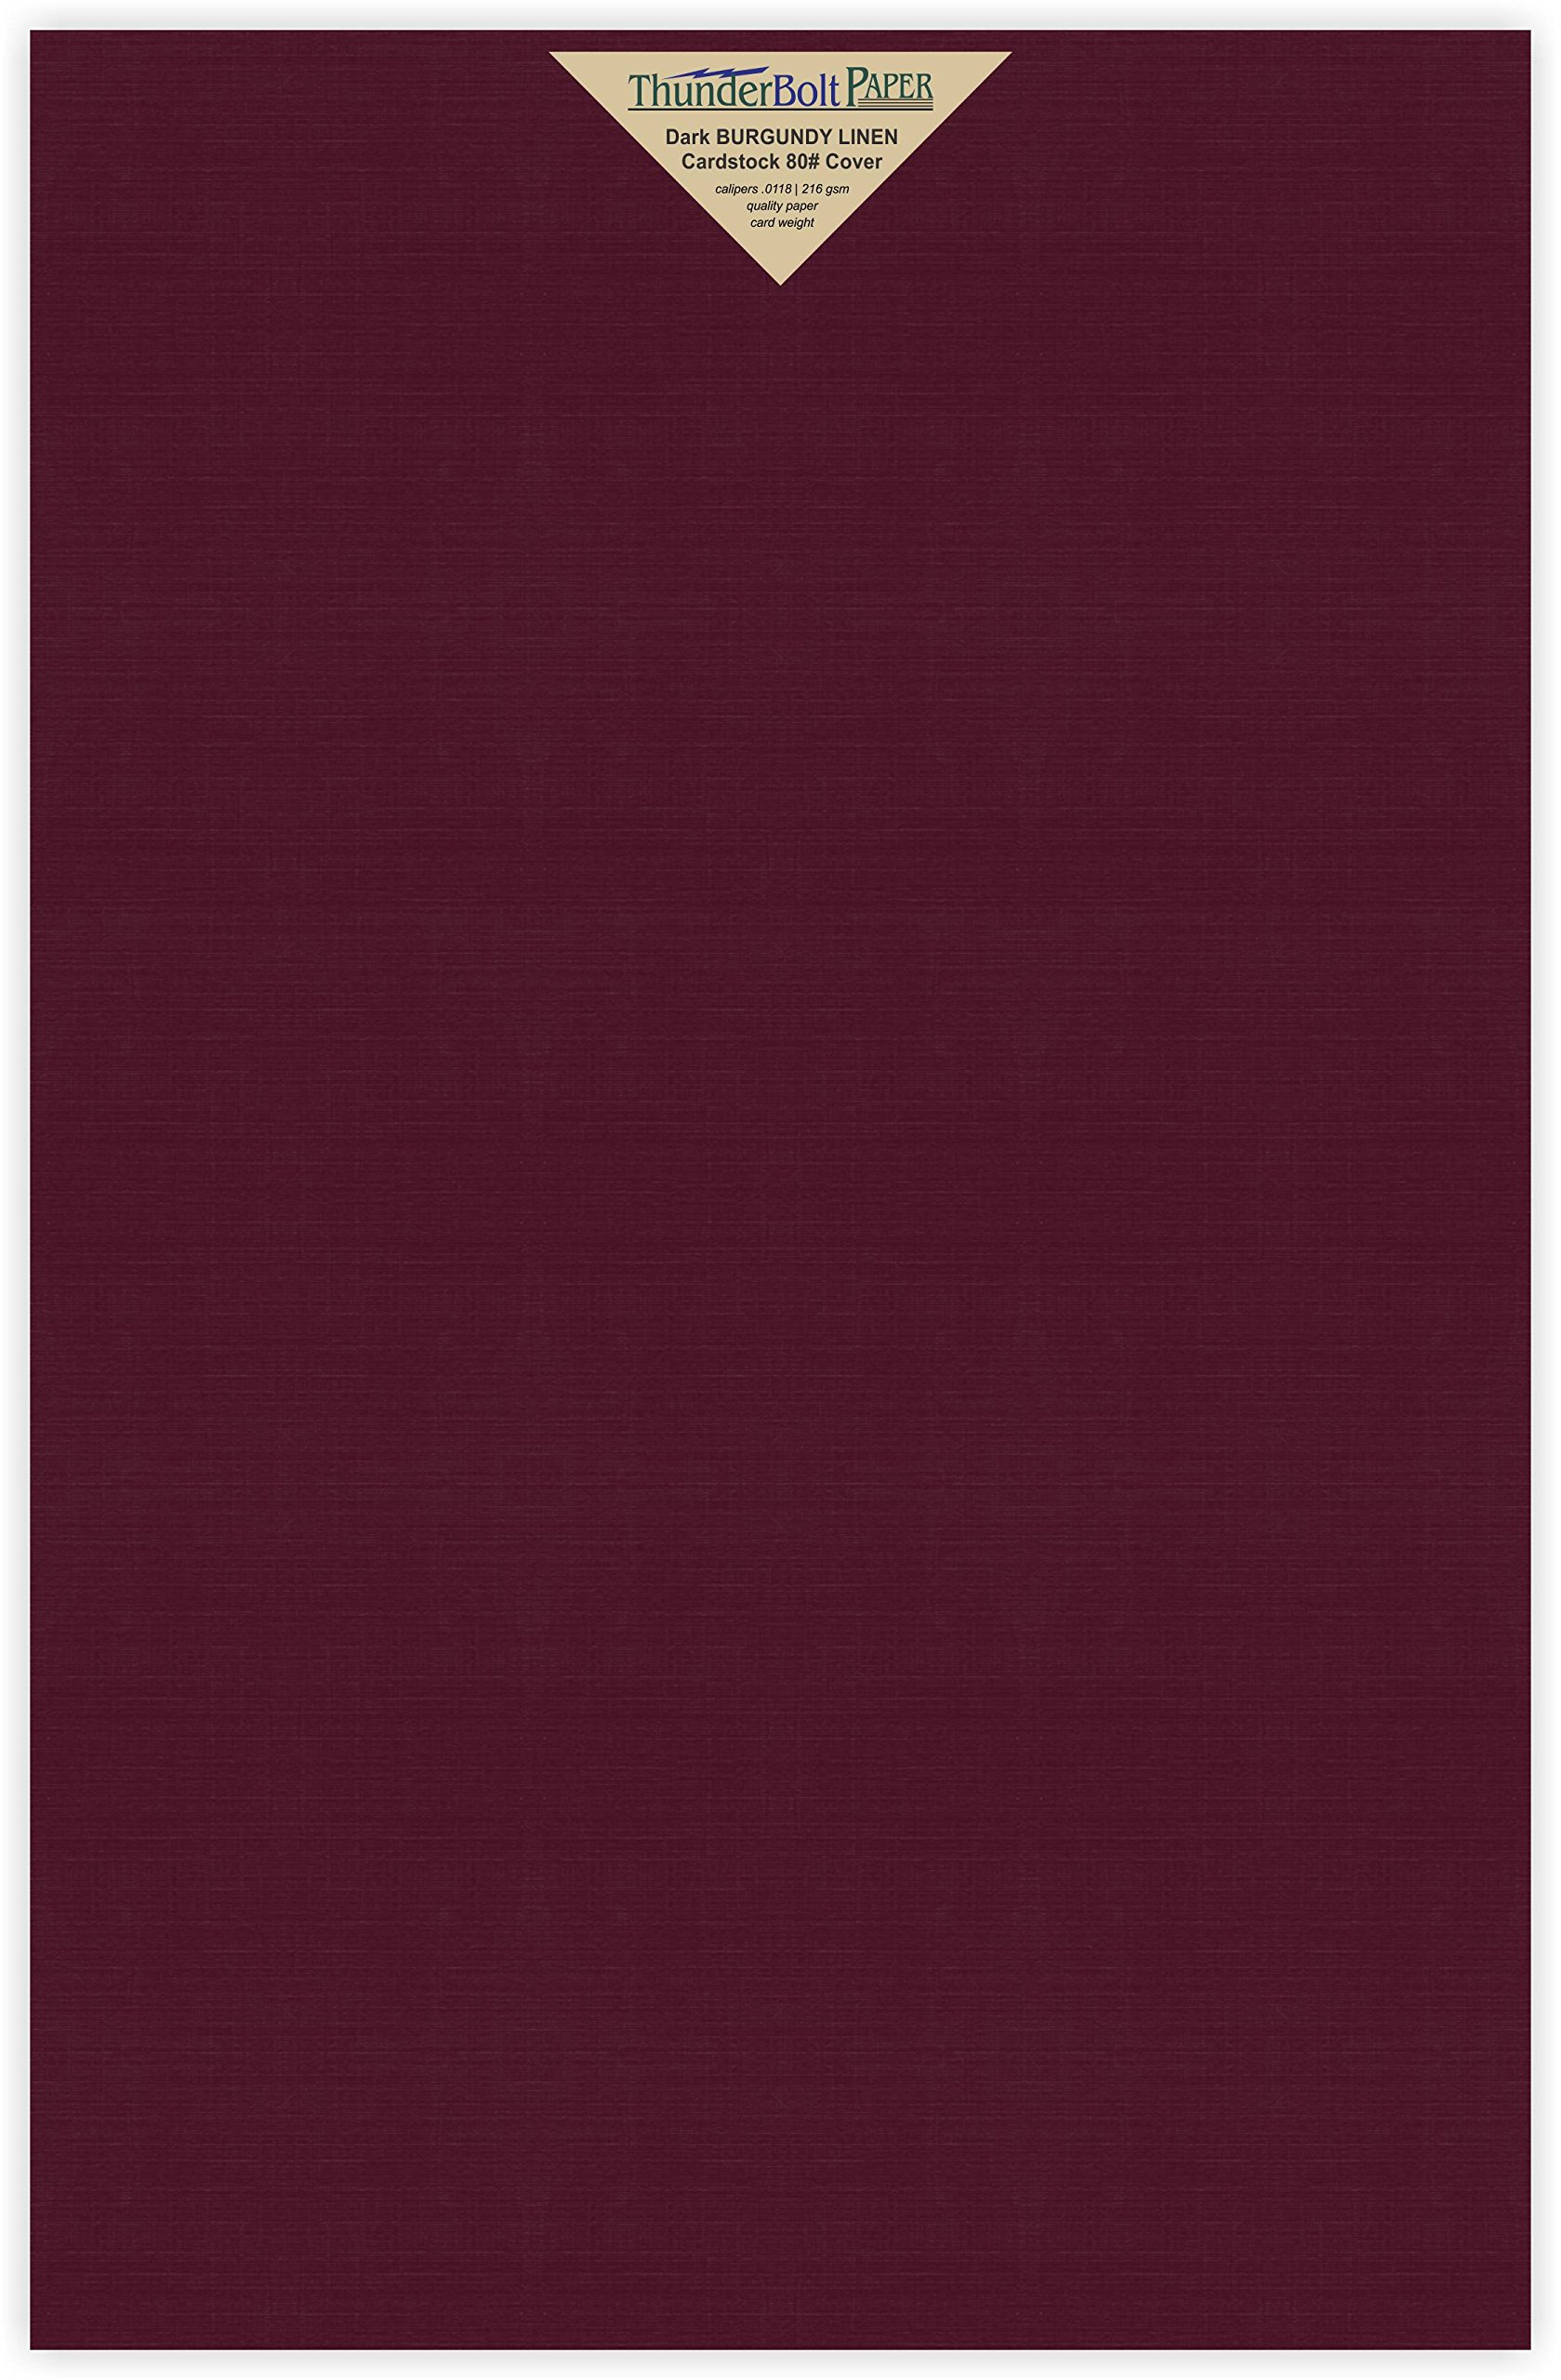 200 Dark Burgundy Linen 80# Cover Paper Sheets - 11'' X 17'' (11X17 Inches) Tabloid|Ledger|Booklet Size - 80 lb/Pound Card Weight - Fine Linen Textured Finish - Deep Dye Quality Cardstock